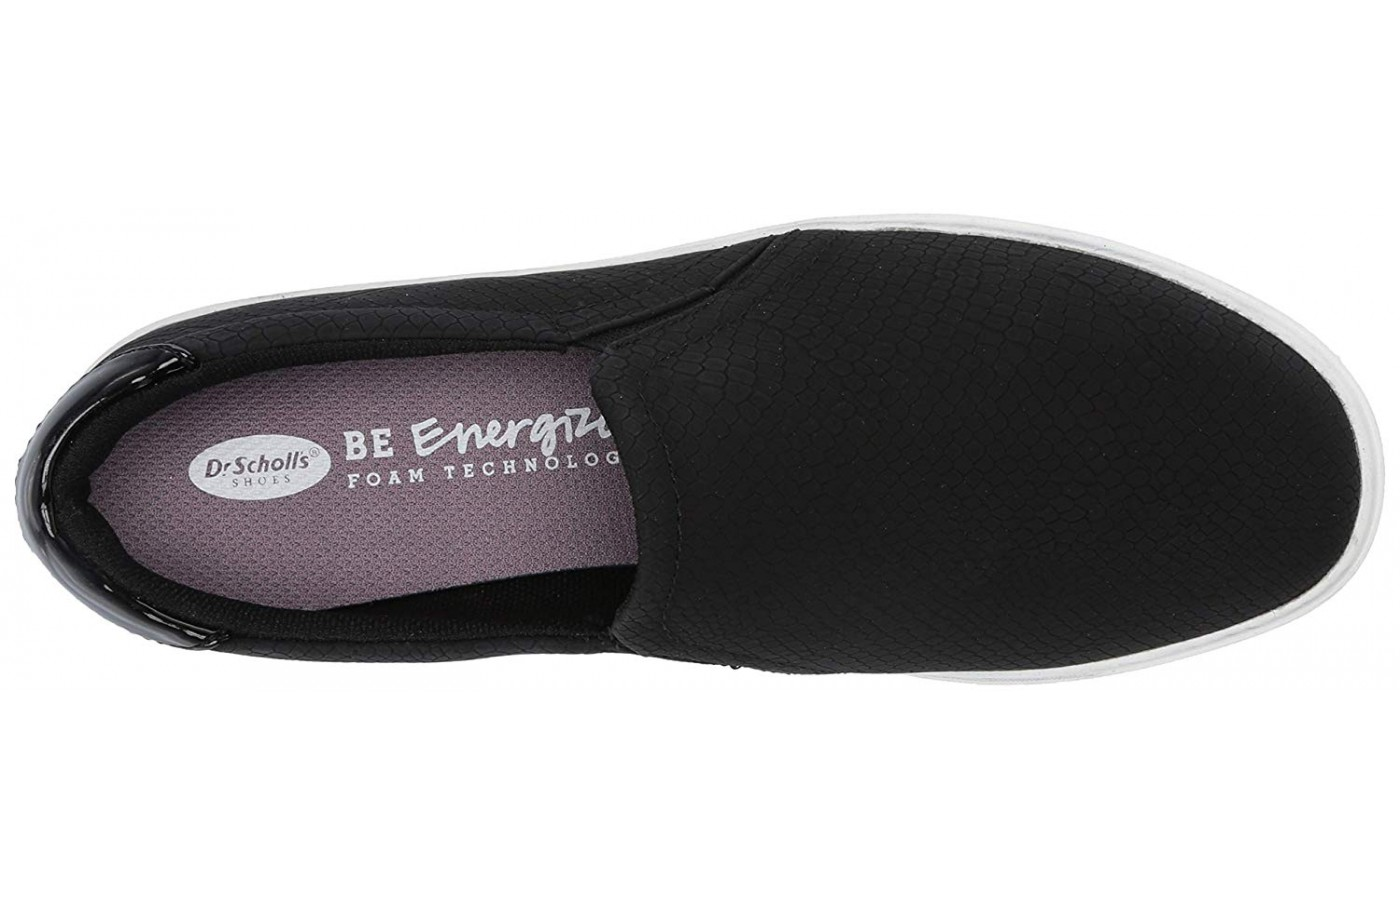 The Be Energized insole peaking out from this Dr. Scholl's slip-on.